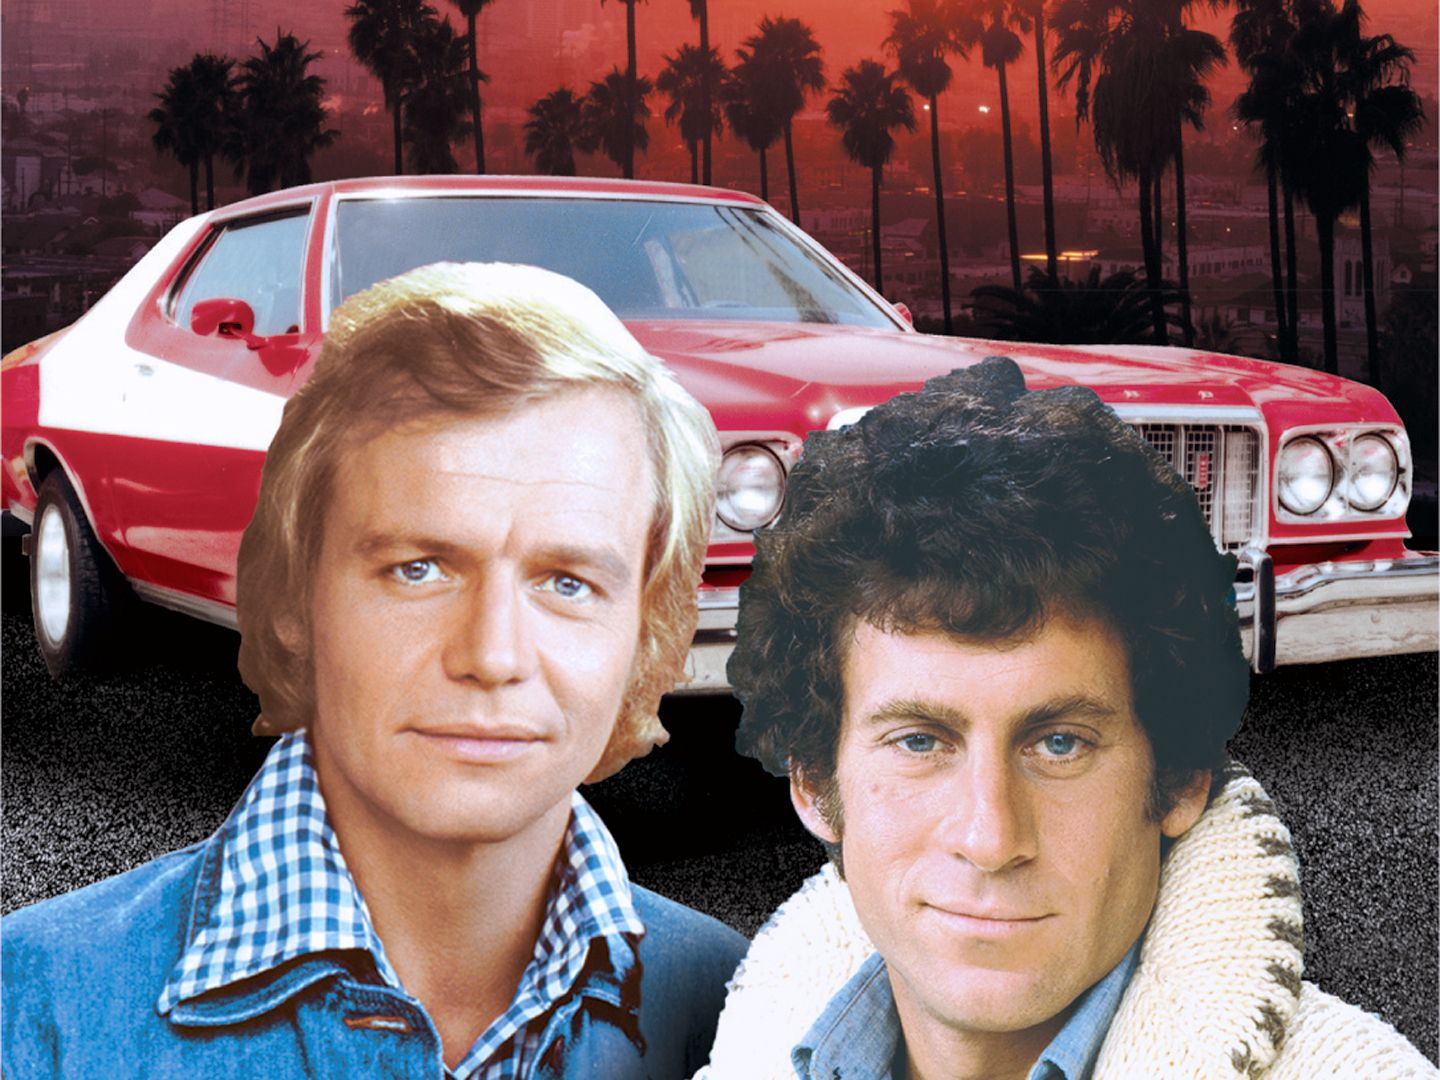 Starsky and Hutch (usually written as Starsky & Hutch) is a 1970s American cop thriller television seriesApril 30, 1975 and May 15, 1979 StarringDavid Soul  Paul Michael Glaser  Antonio Fargas  Bernie Hamilton  Richard Ward (pilot)